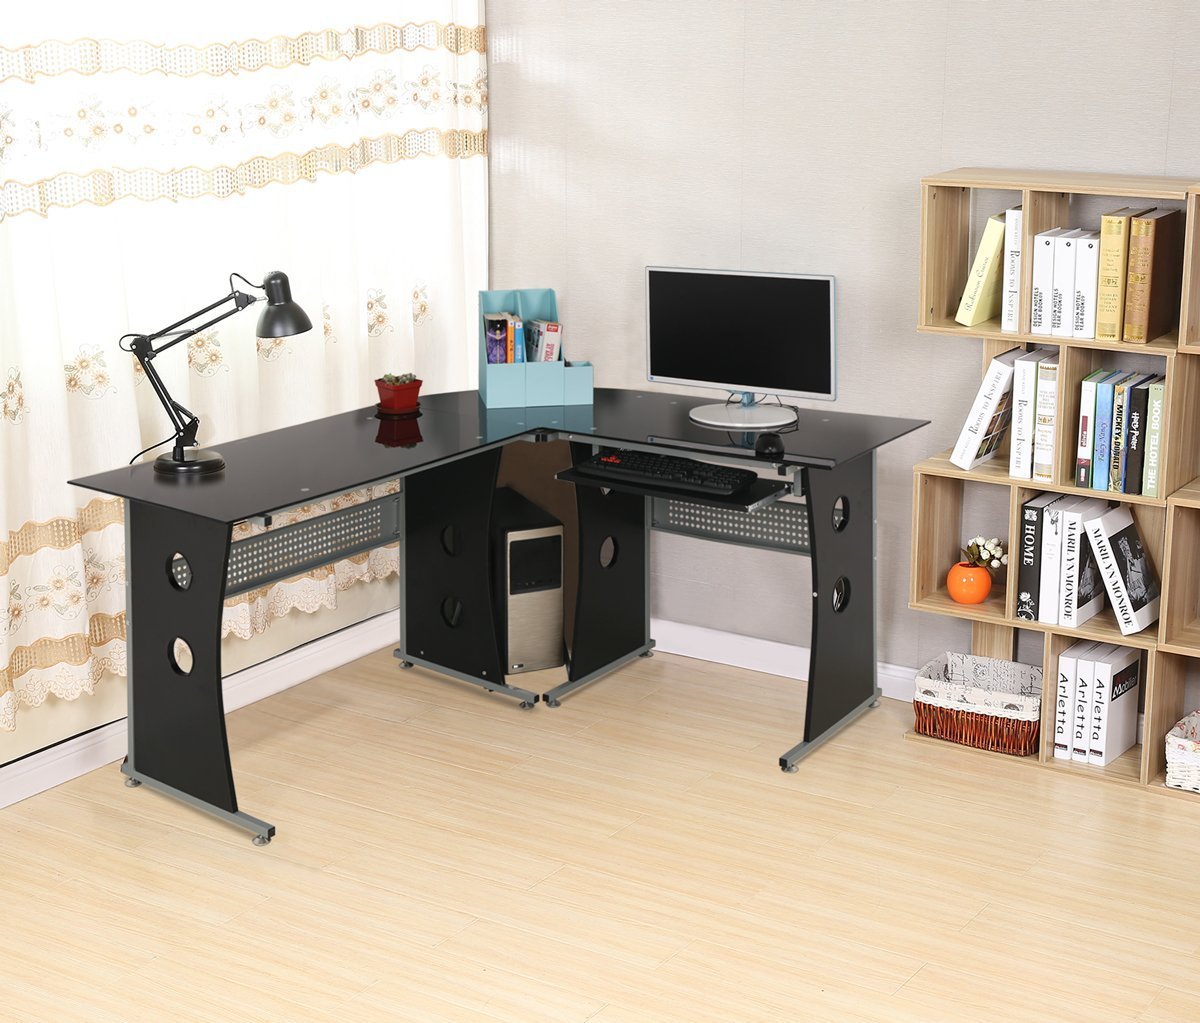 HLC L-shaped Corner Home/Office Workstation Computer Desk with Interchangeable Desktops, Tempered Glass Top and Pull-out Keyboard Shelf